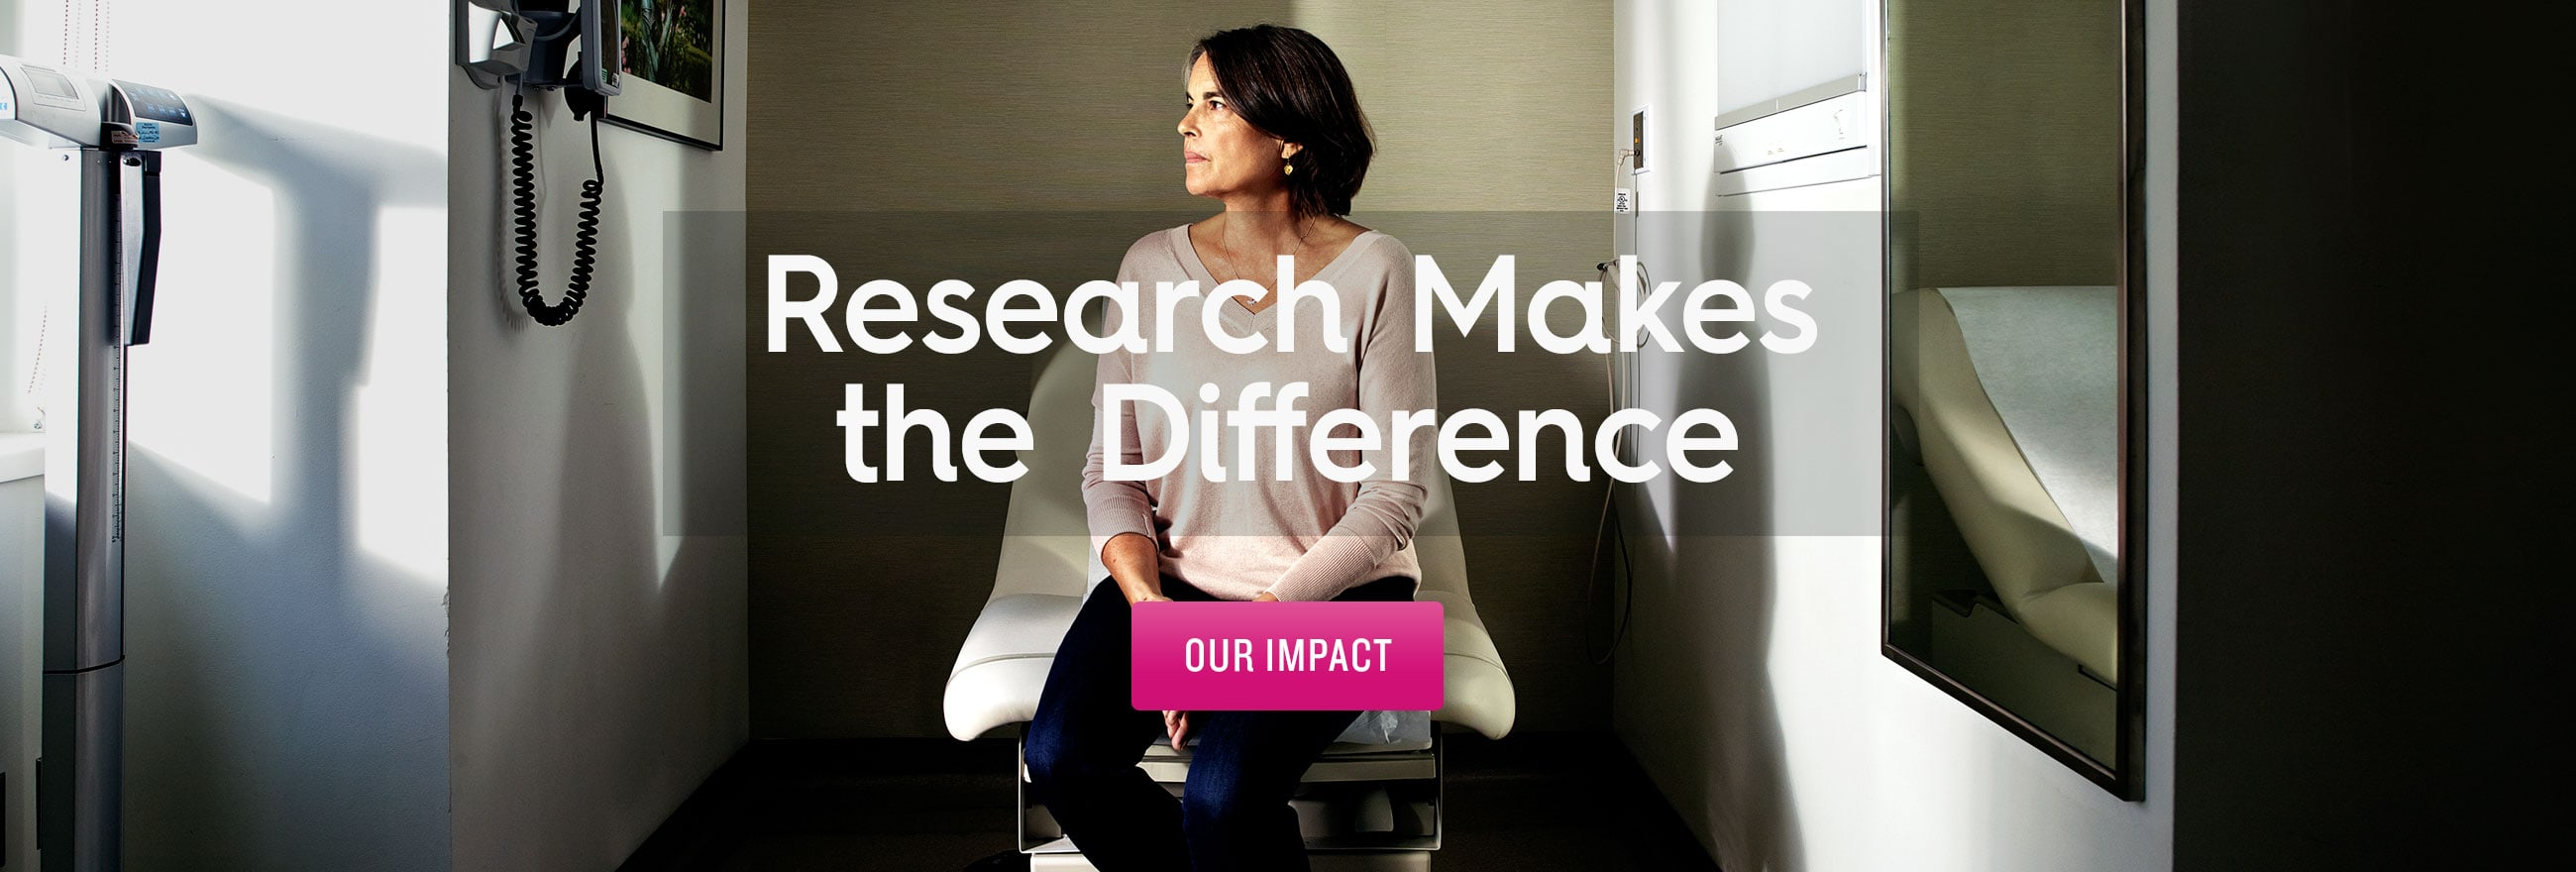 research makes a difference